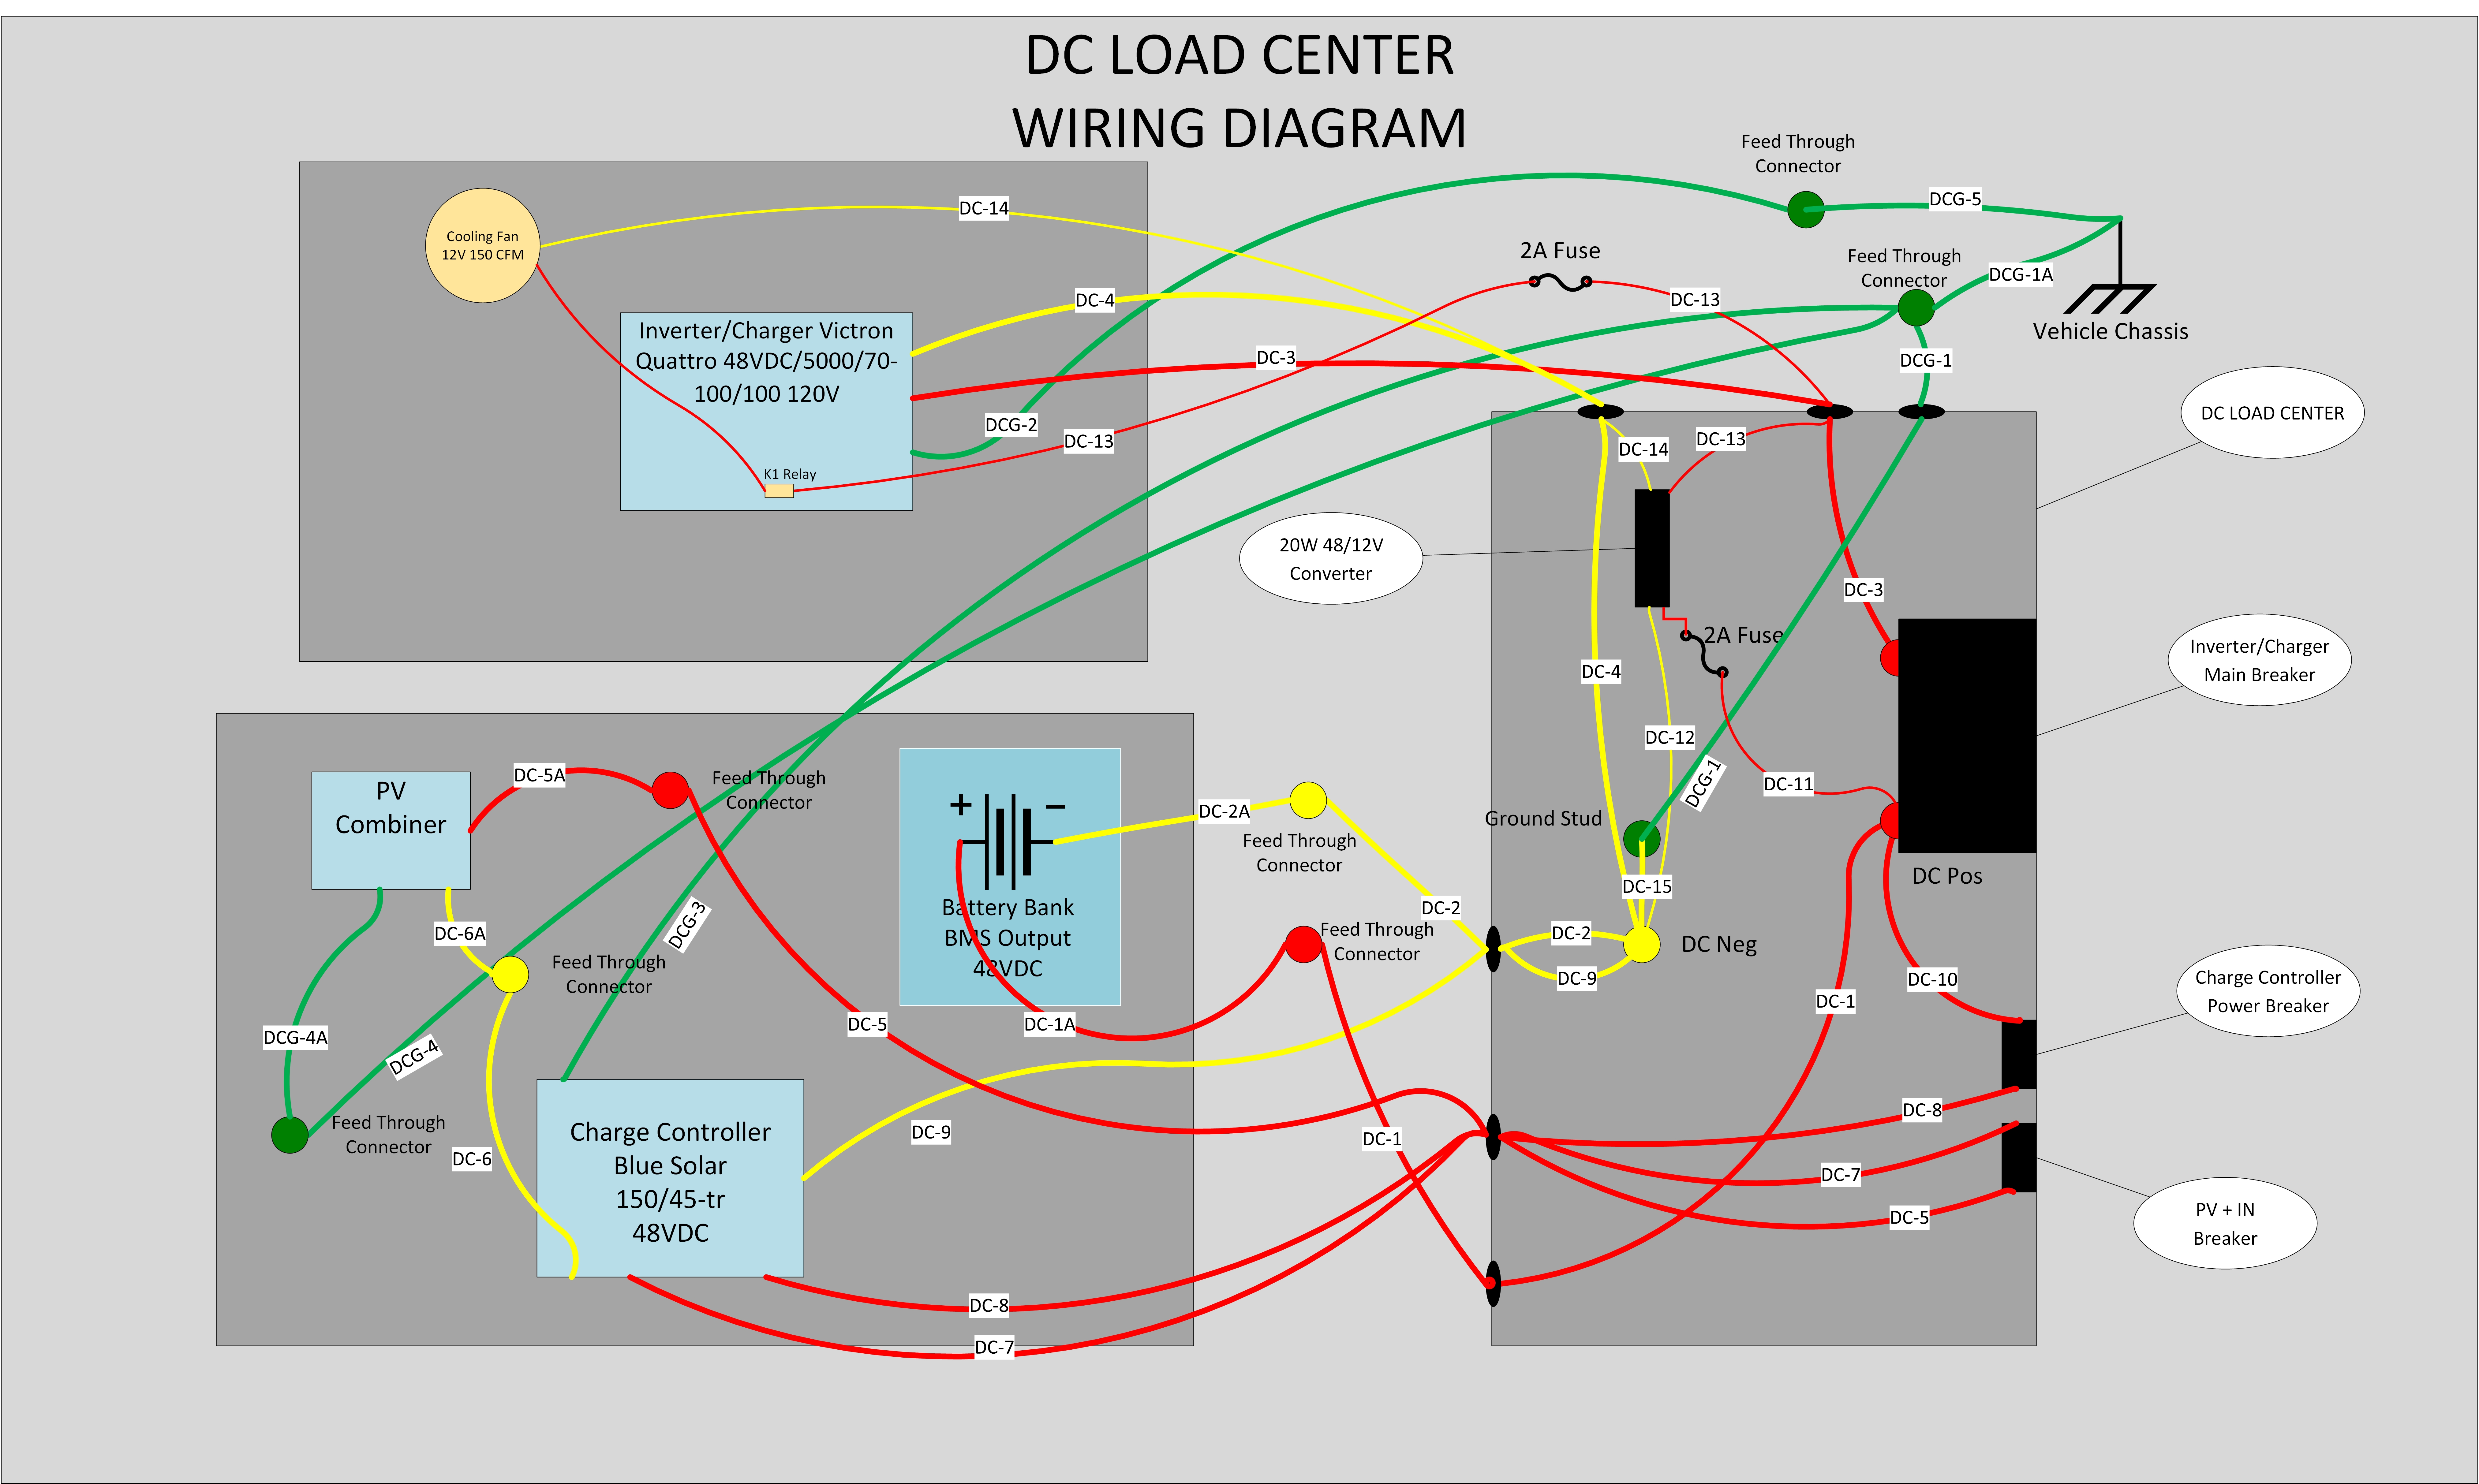 Dc Load Center Wiring Manual Guide Diagram Safety Disconnect Switch A Mad Scientist S Take On The Ultimate Electrical System Part 2 Rh Truckcamperadventure Com Square D 50 Amp